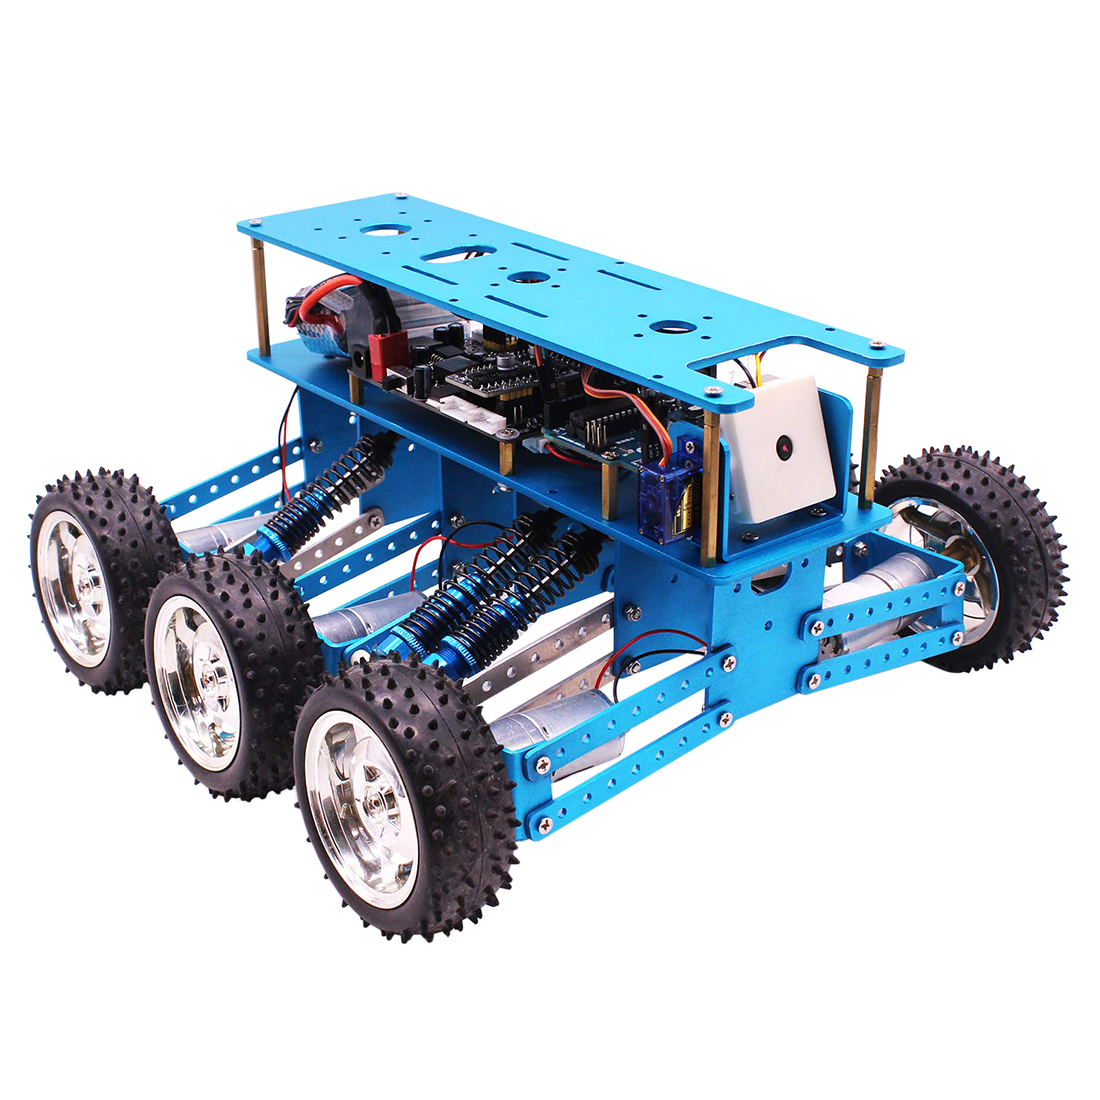 High Quality 6WD Off-Road Robot Car With Camera For Arduino UNO DIY Kit Robot For Programming Intelligent Education And Learning